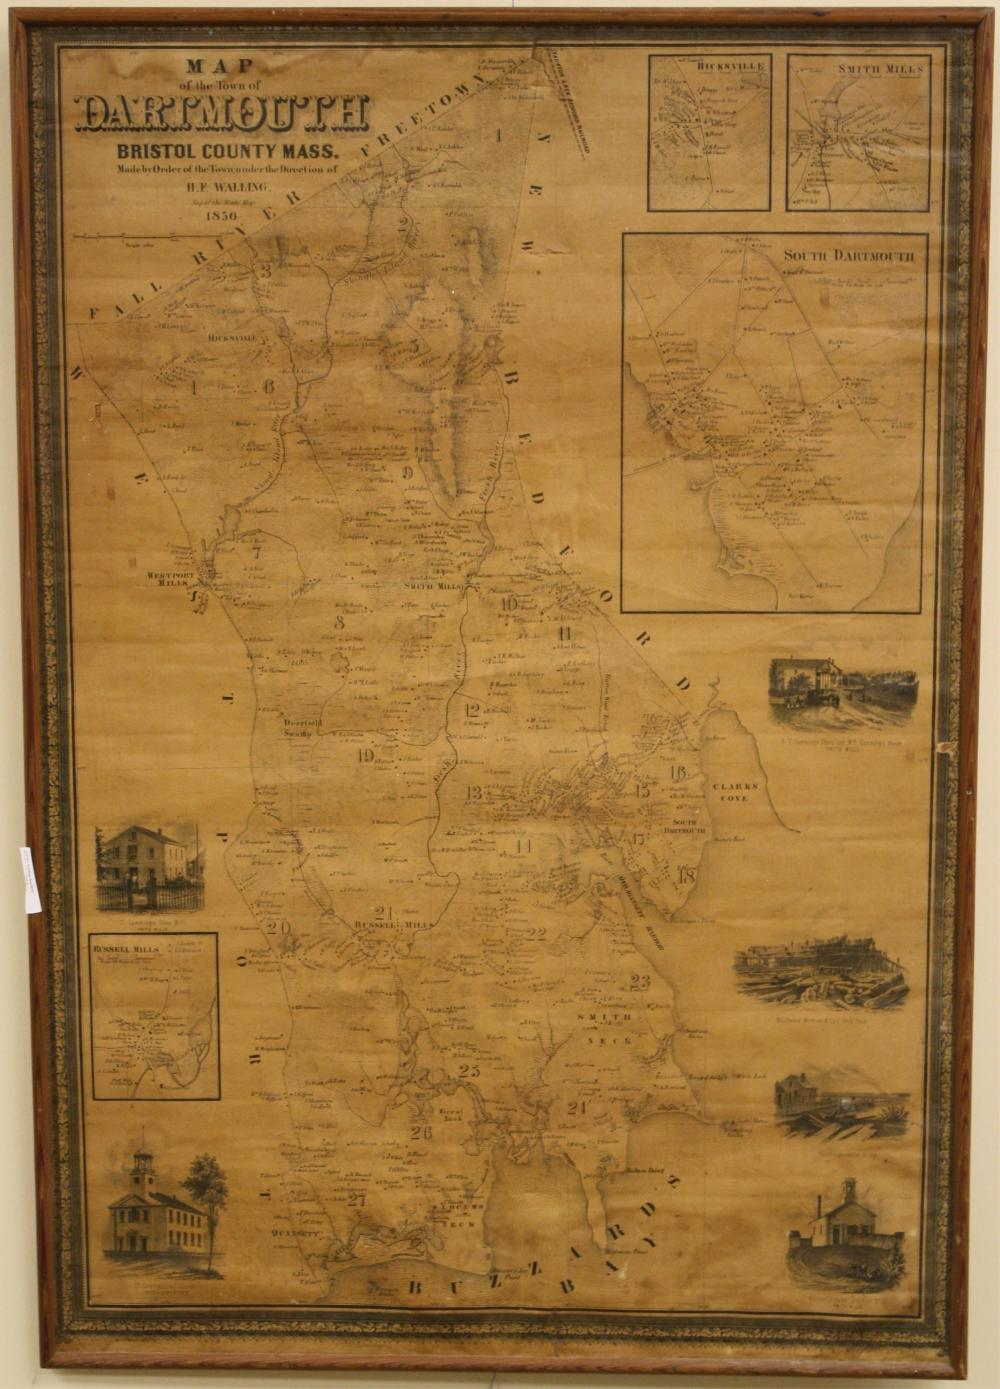 1856 MAP OF THE TOWN OF DARTMOUTH, MASSACHUSETTS,